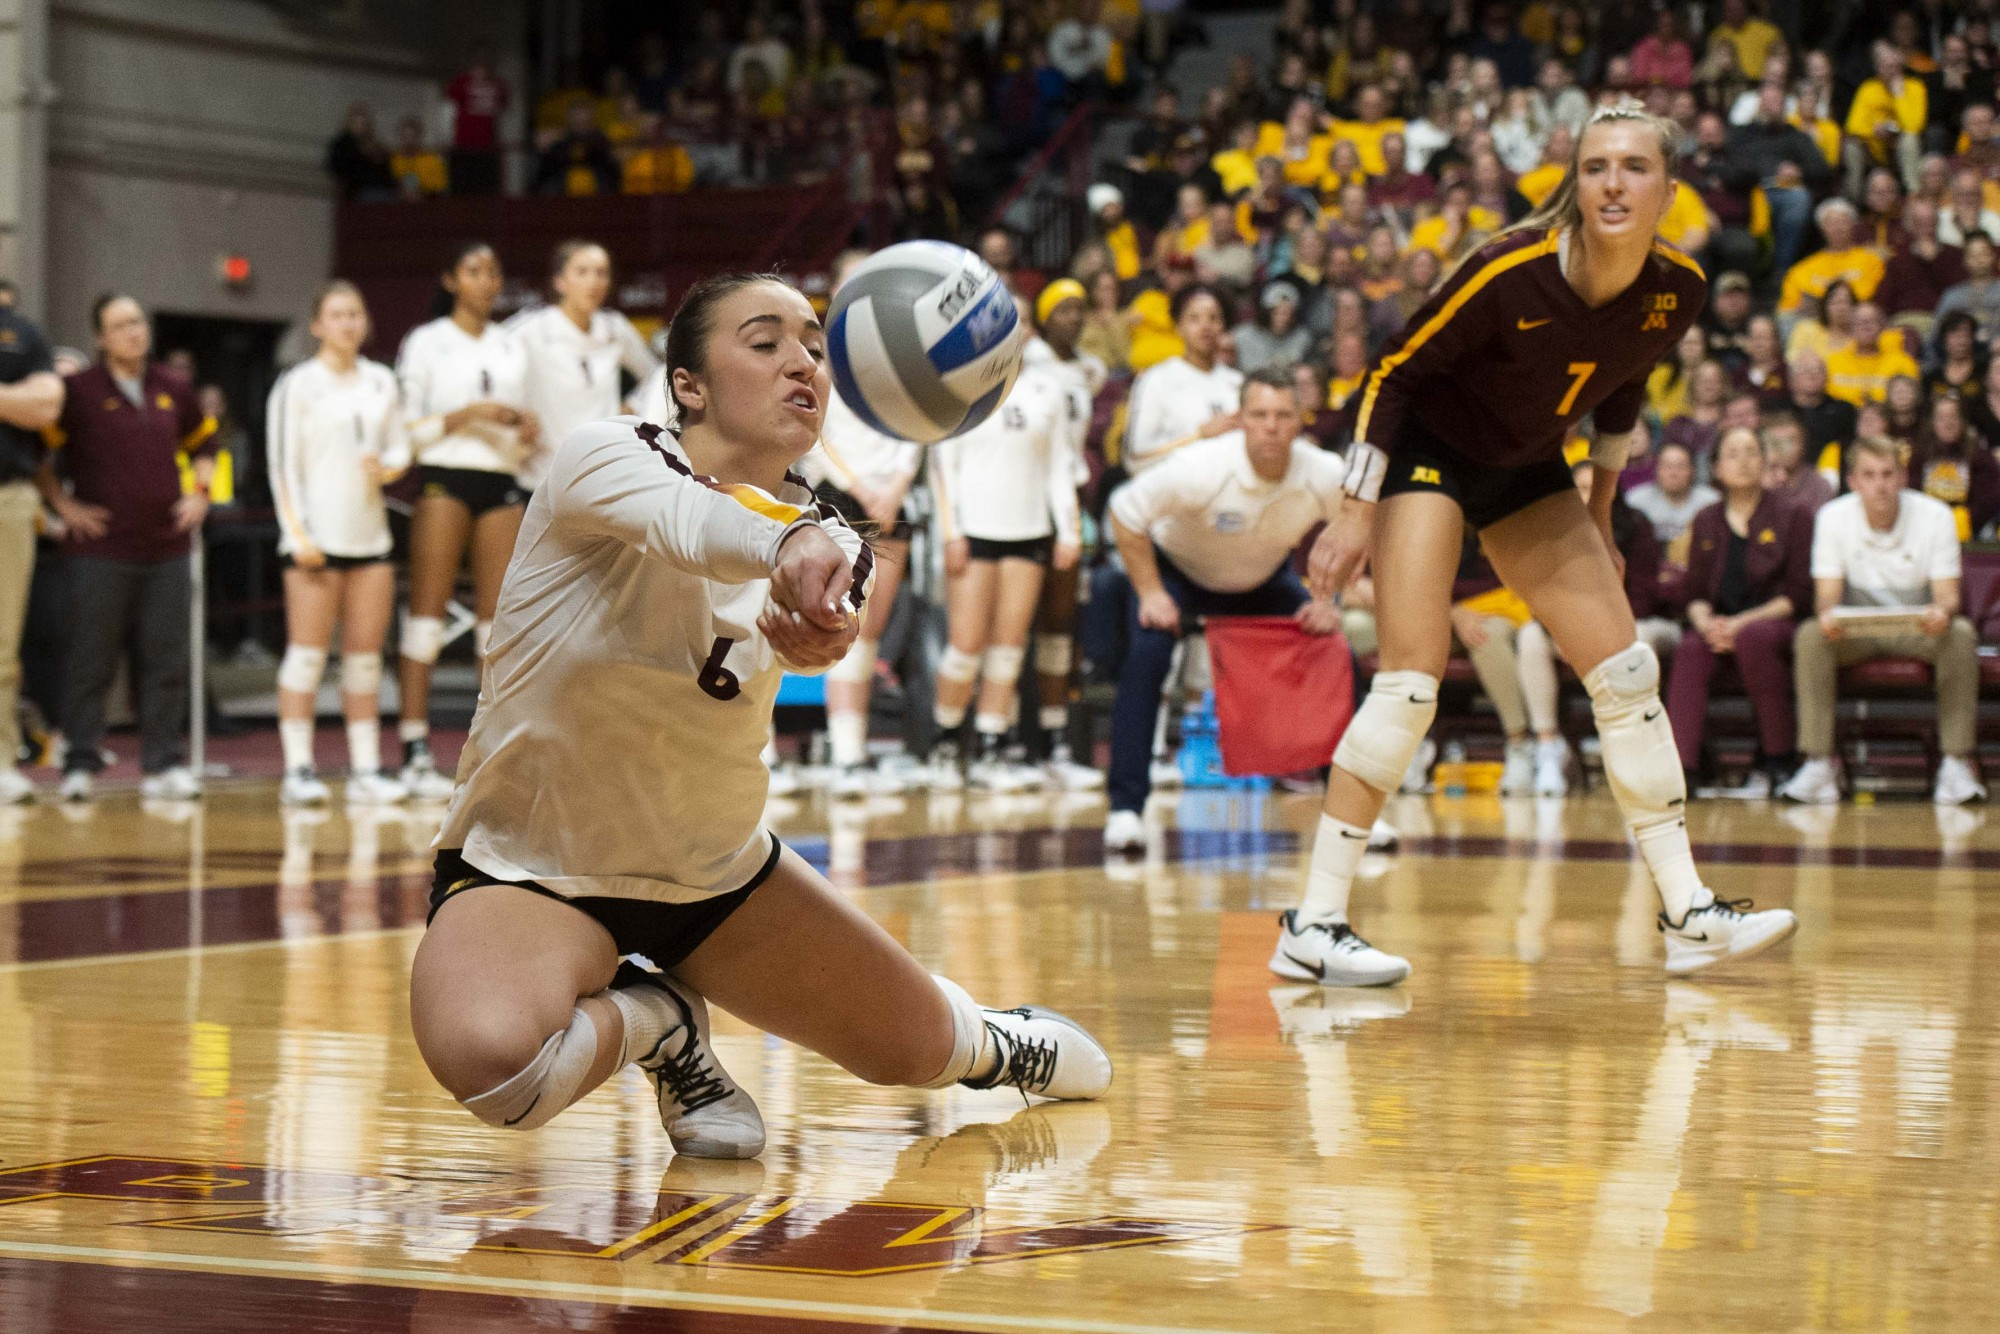 Rachel Kilkelly dives for the ball at the Maturi Pavilion on Friday, Nov. 22. The Gophers took Nebraska to five sets but ultimately fell 3-2.